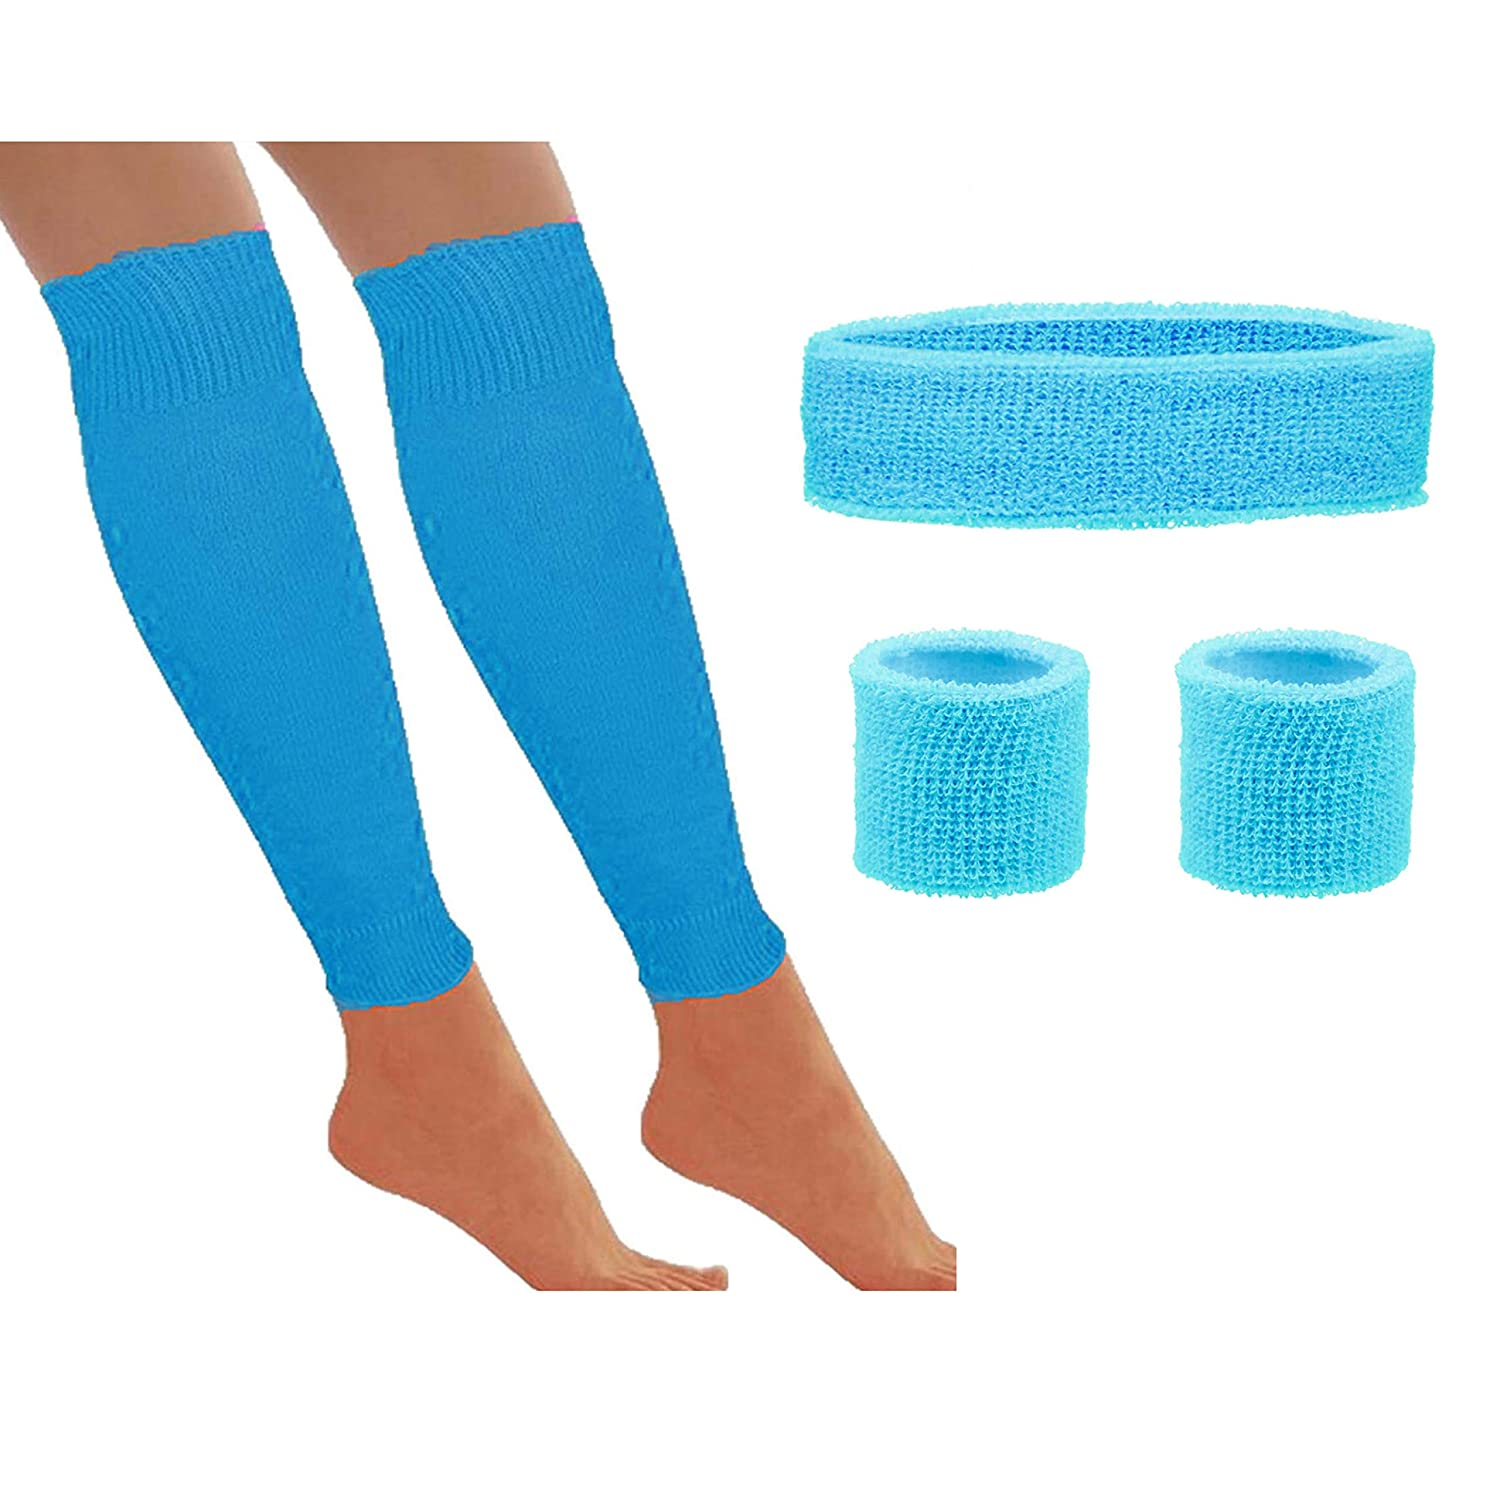 80s Workout Accessories Set with Leg Warmers, Sweatbands and Bracelets - many colours